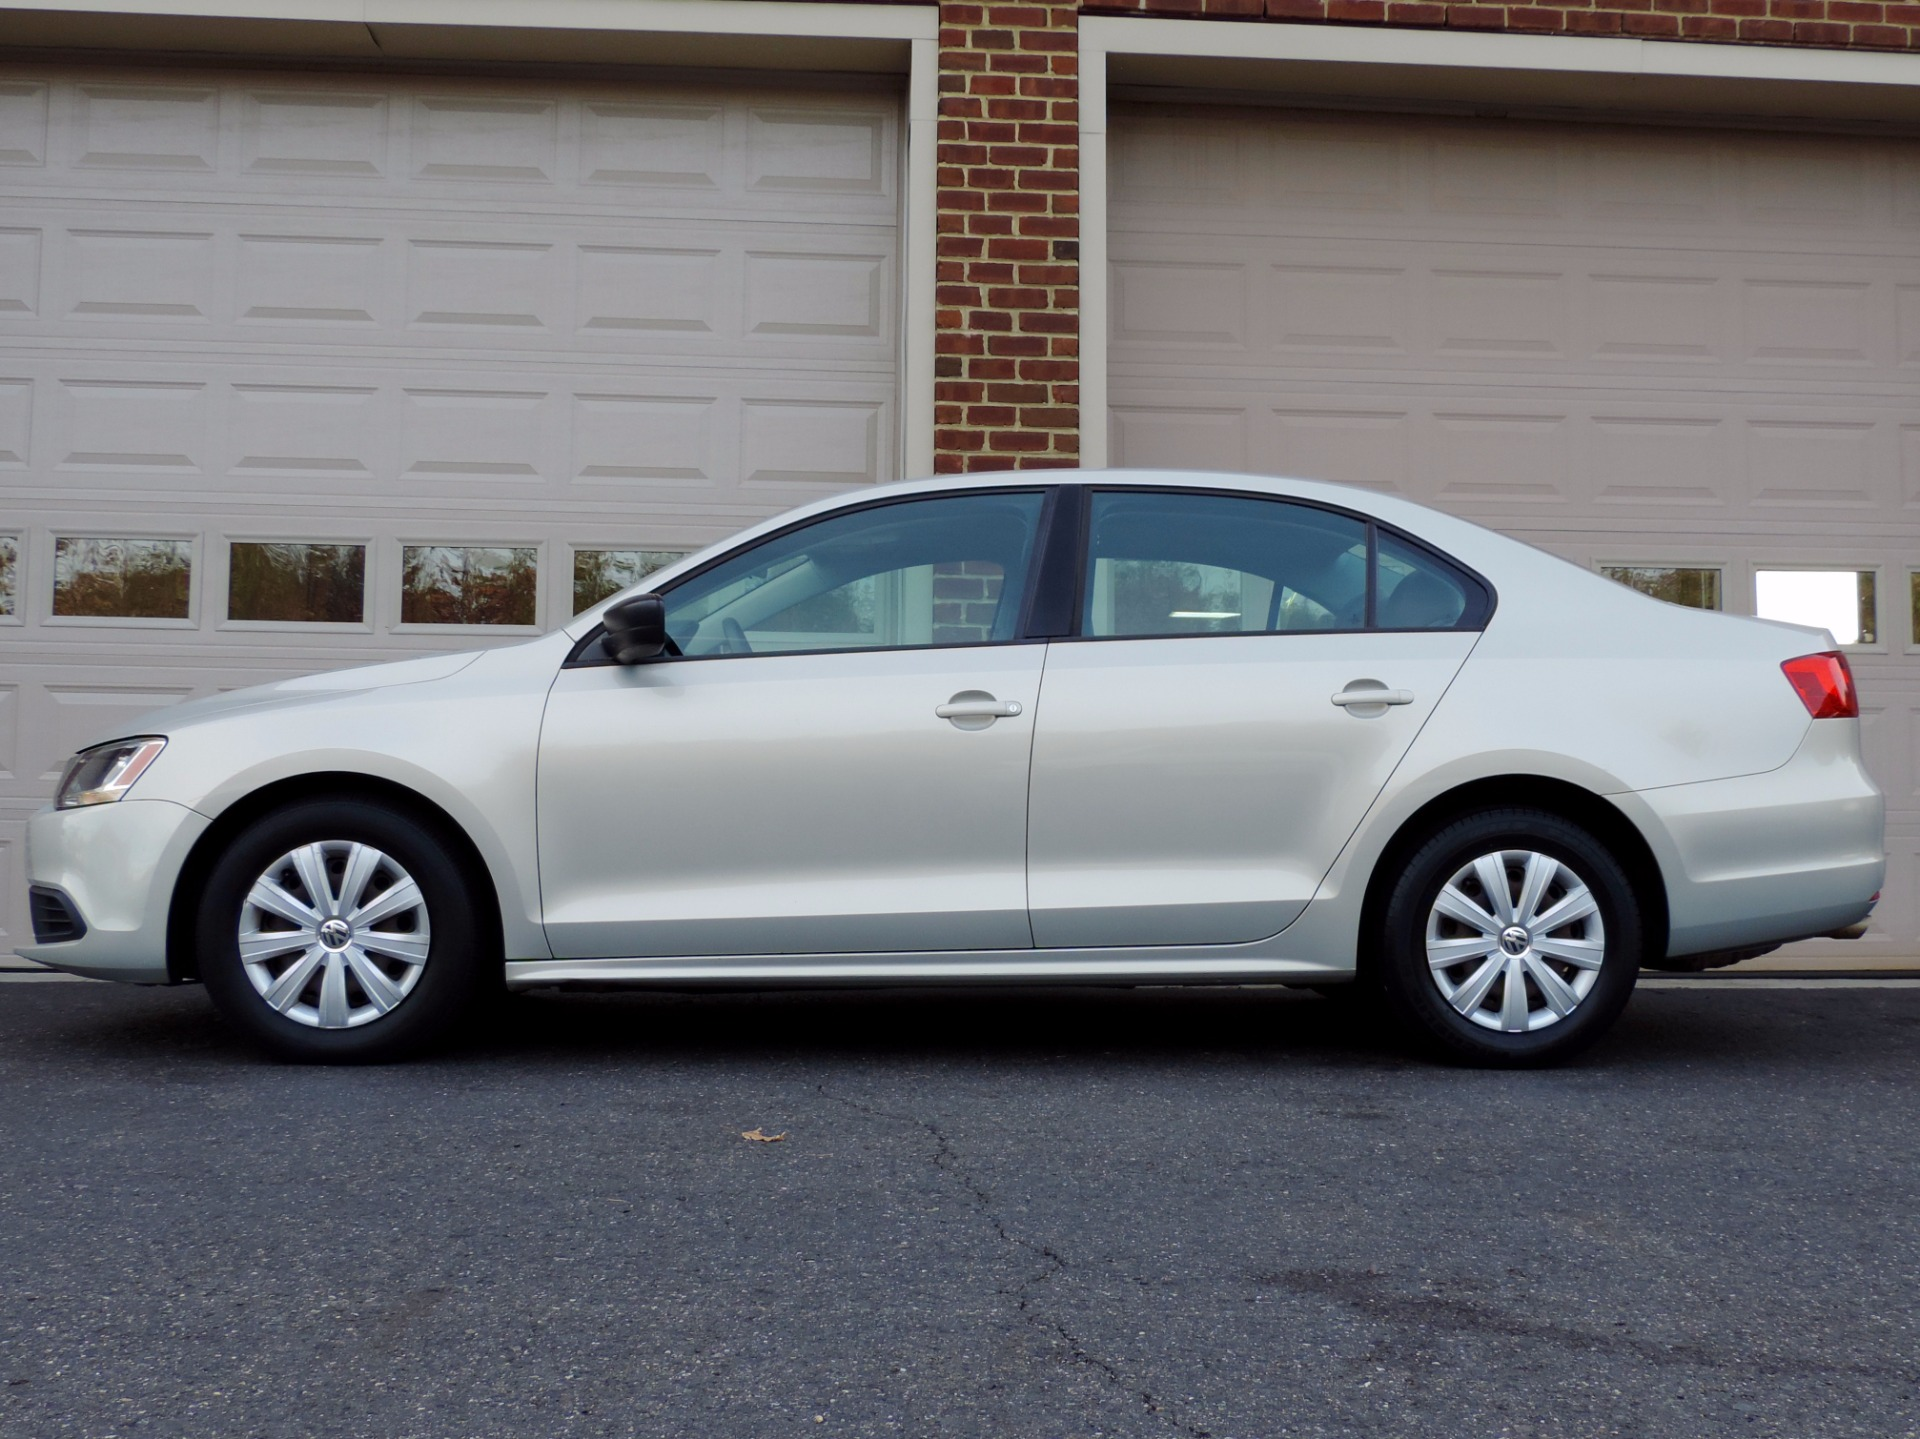 2011 Volkswagen Jetta Stock 338104 For Sale Near